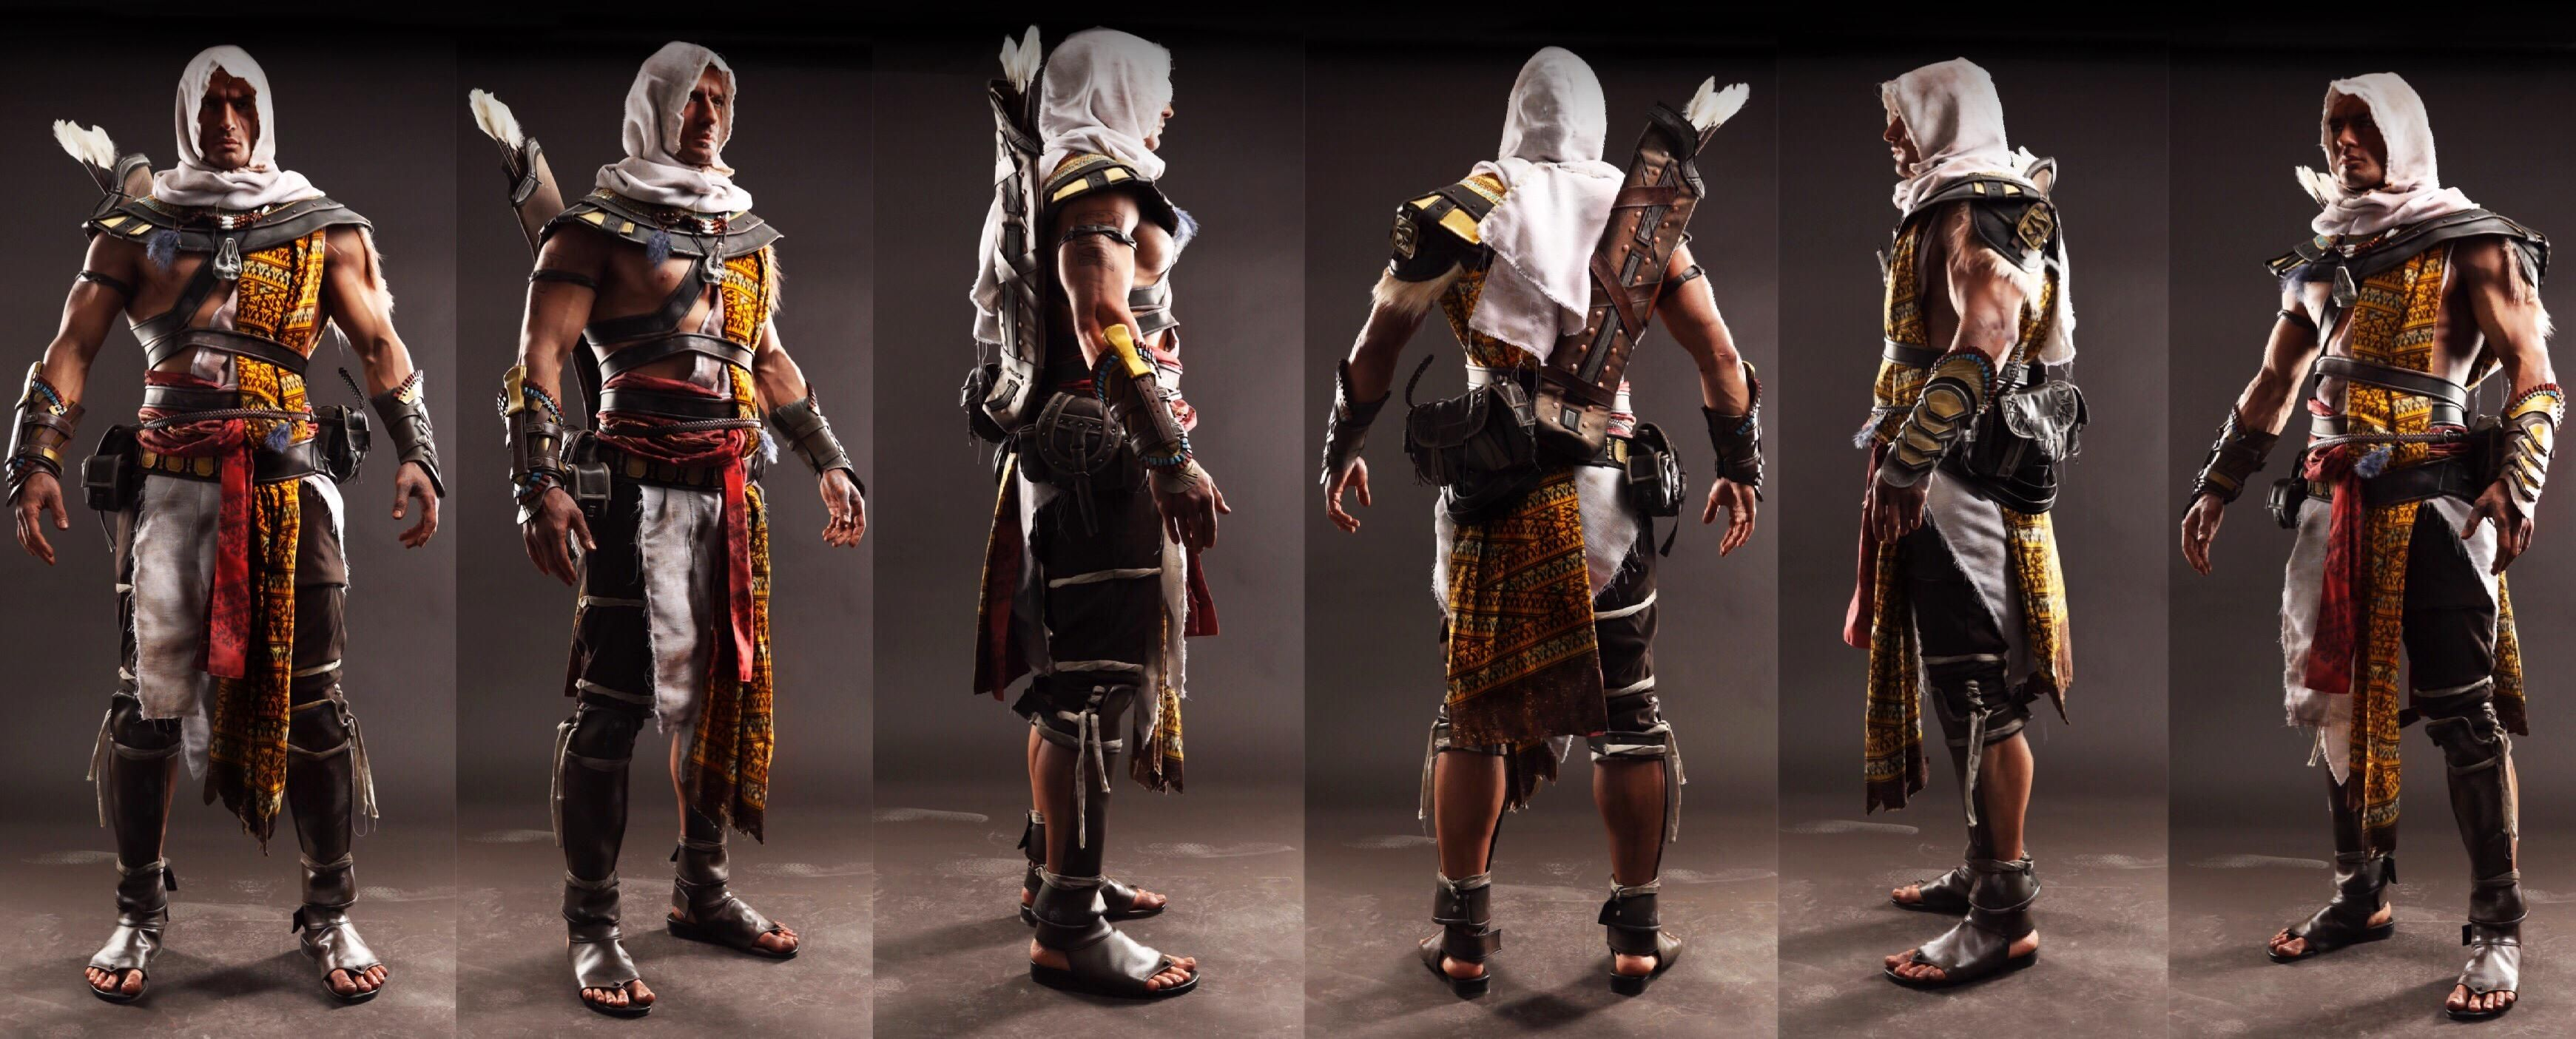 Bayek Assassins Creed Origins Cosplay By Leon Chiro With Images